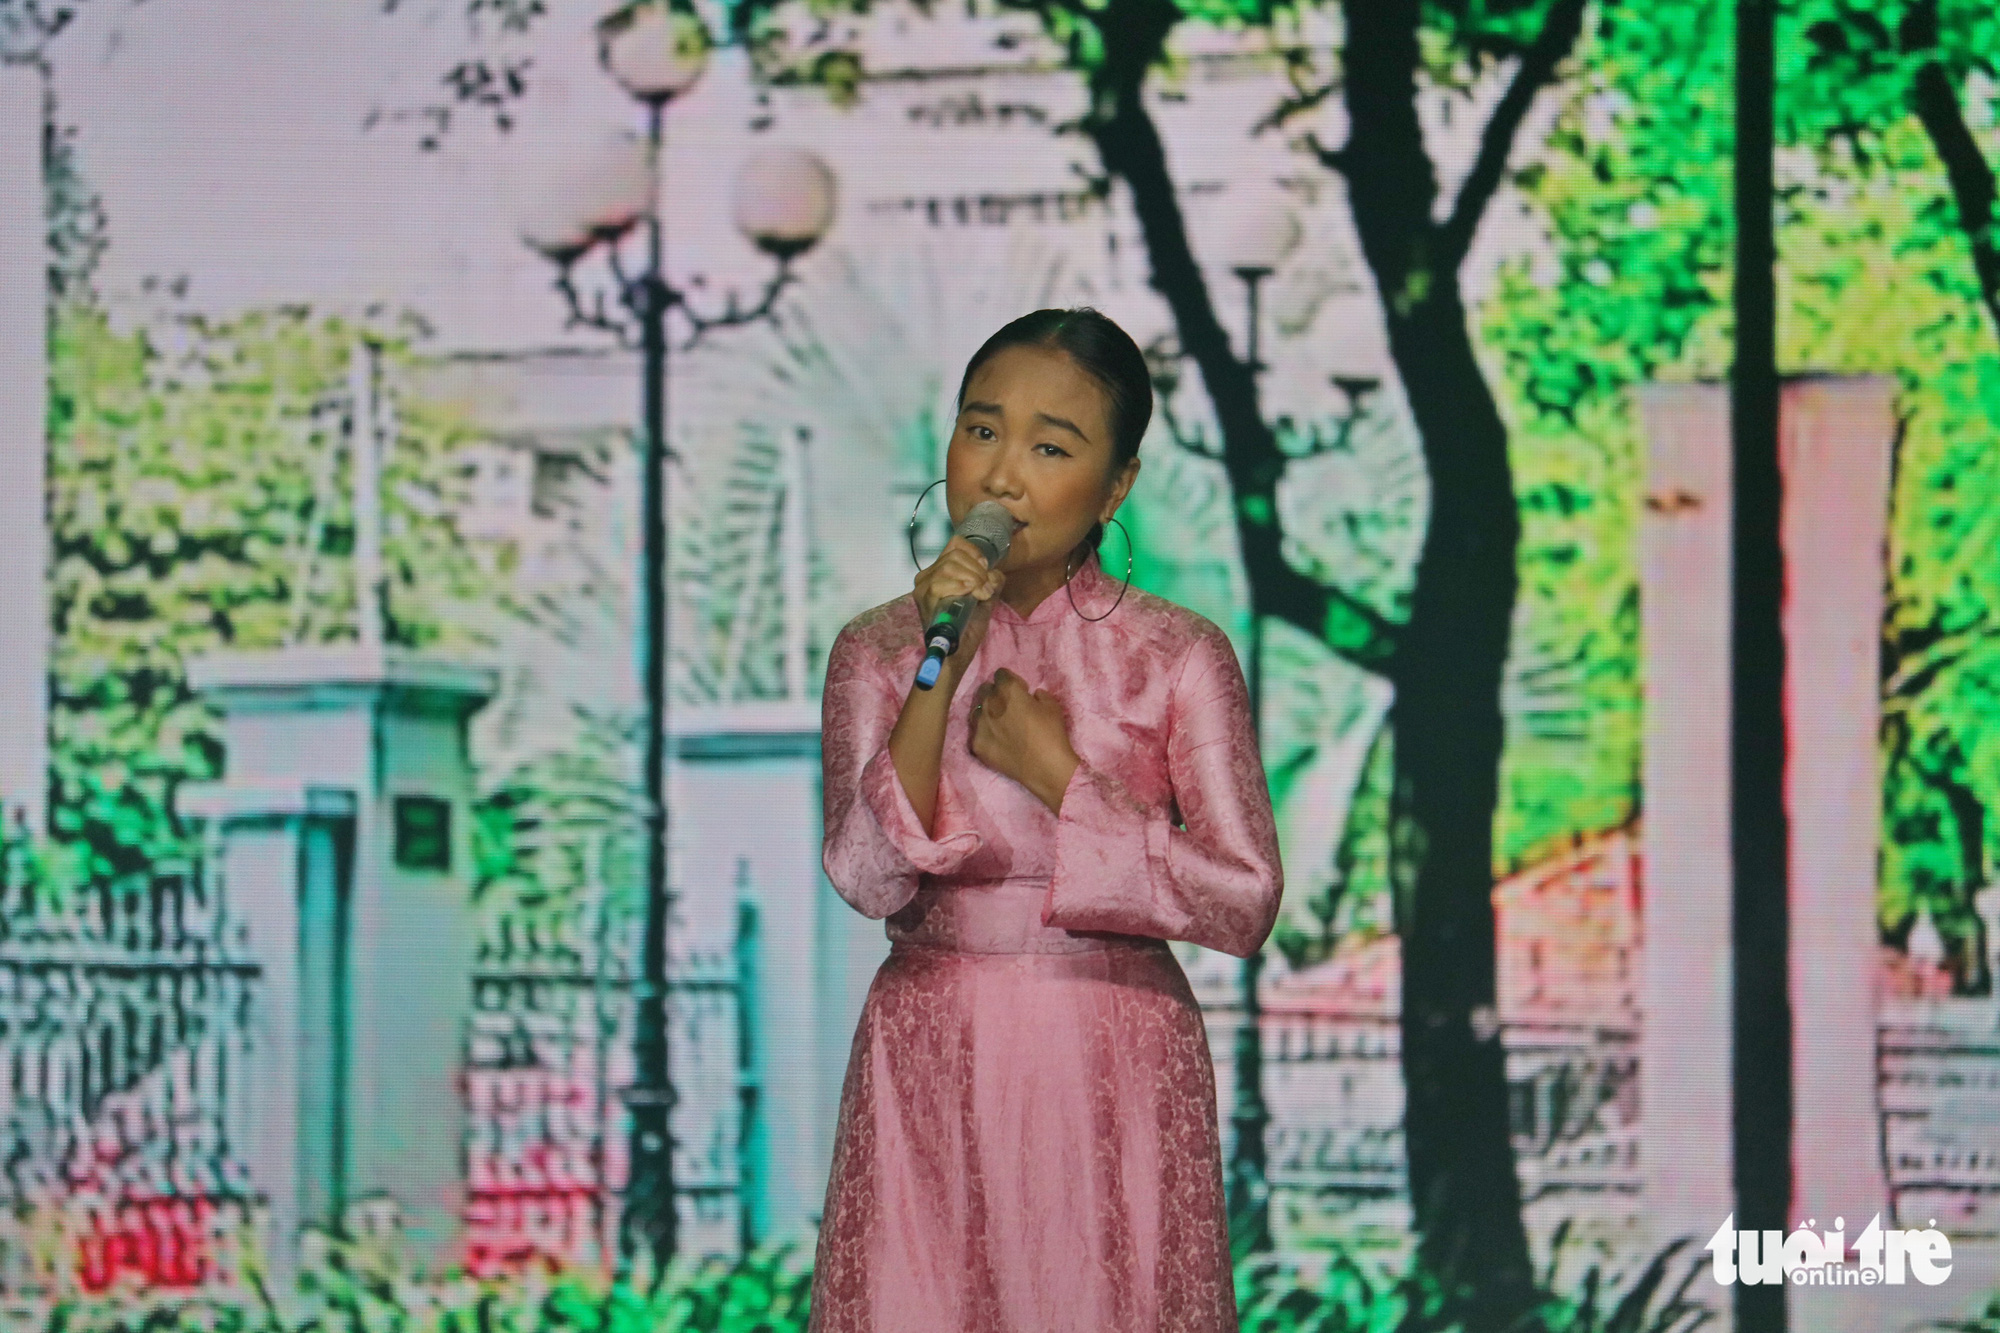 <em>Singer Doan Trang performs at the Ho Chi Minh City Ao Dai Festival at Nguyen Hue Pedestrian Street in Ho Chi Minh City, June 27, 2020. Photo</em>: Ngoc Phuong / Tuoi Tre